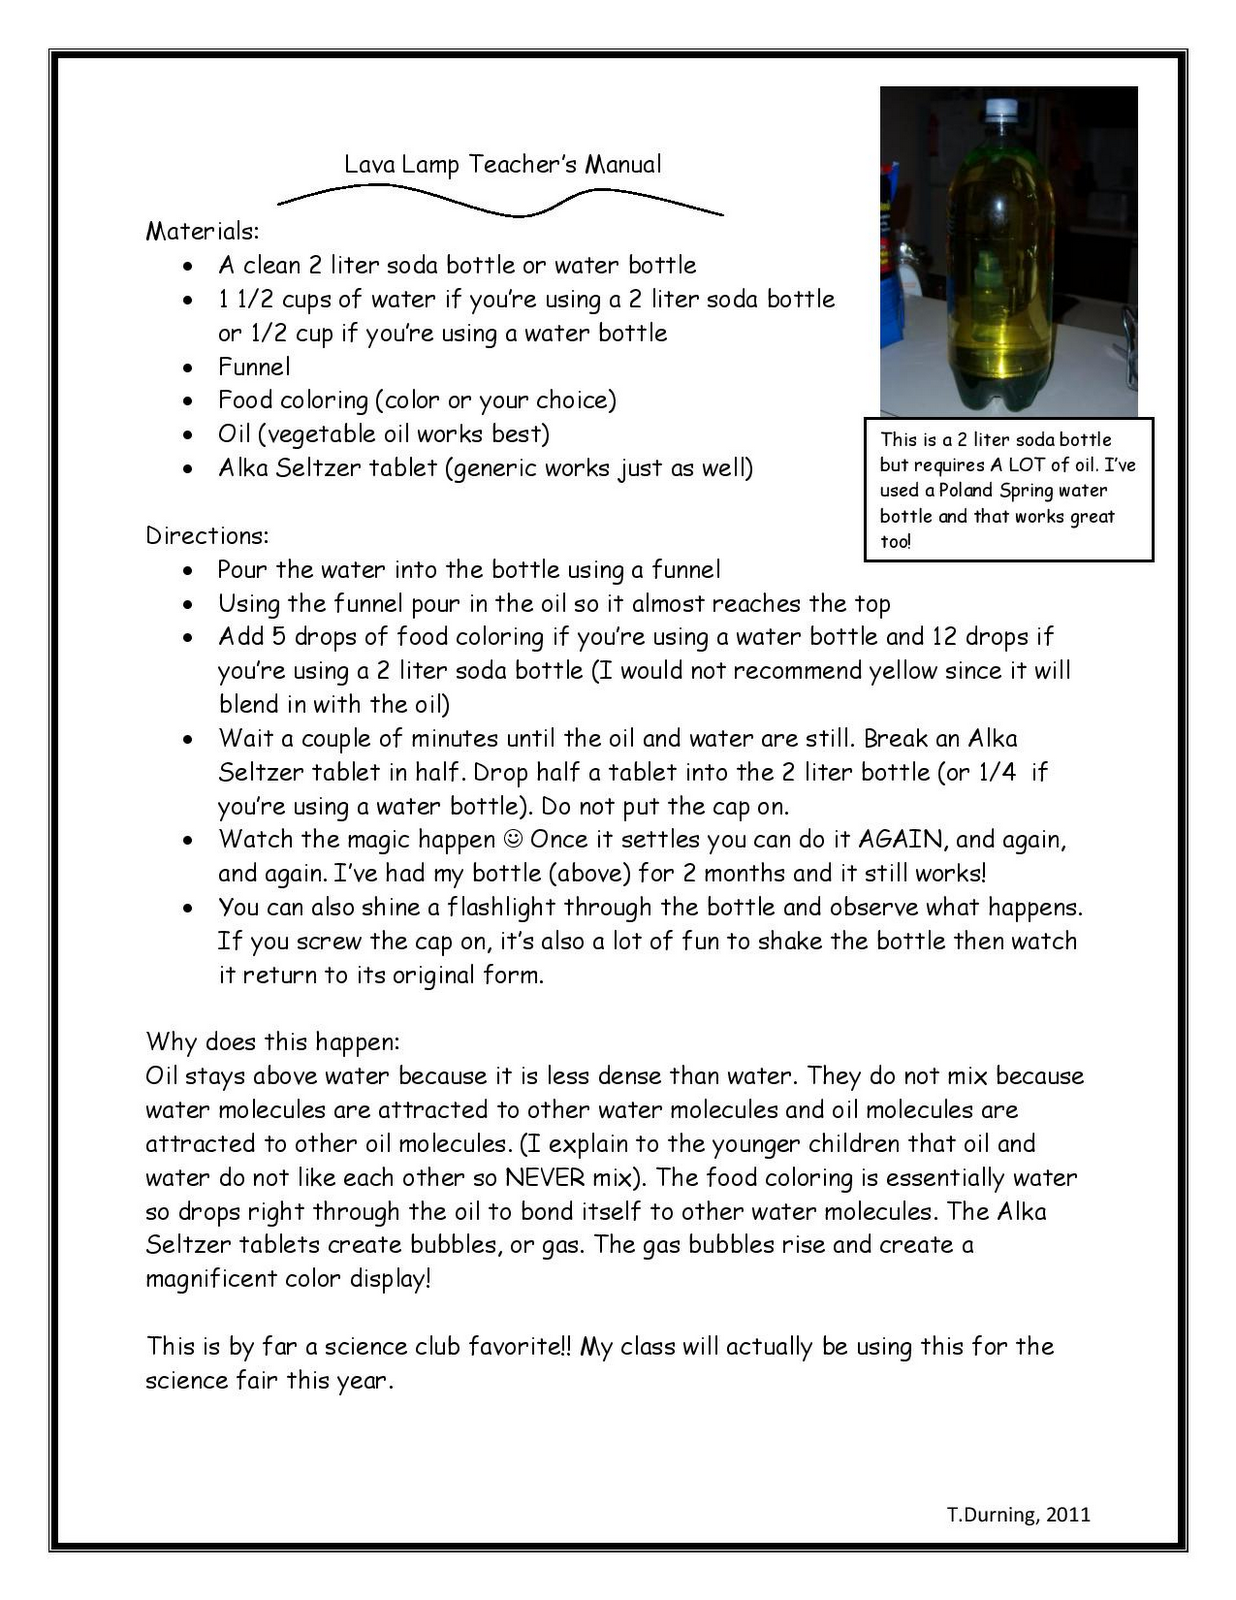 Lava Lamp Science Fair Project Cool 36 Free Resources Lava Lamp Science Experiment  Teaching Ideas In Inspiration Design